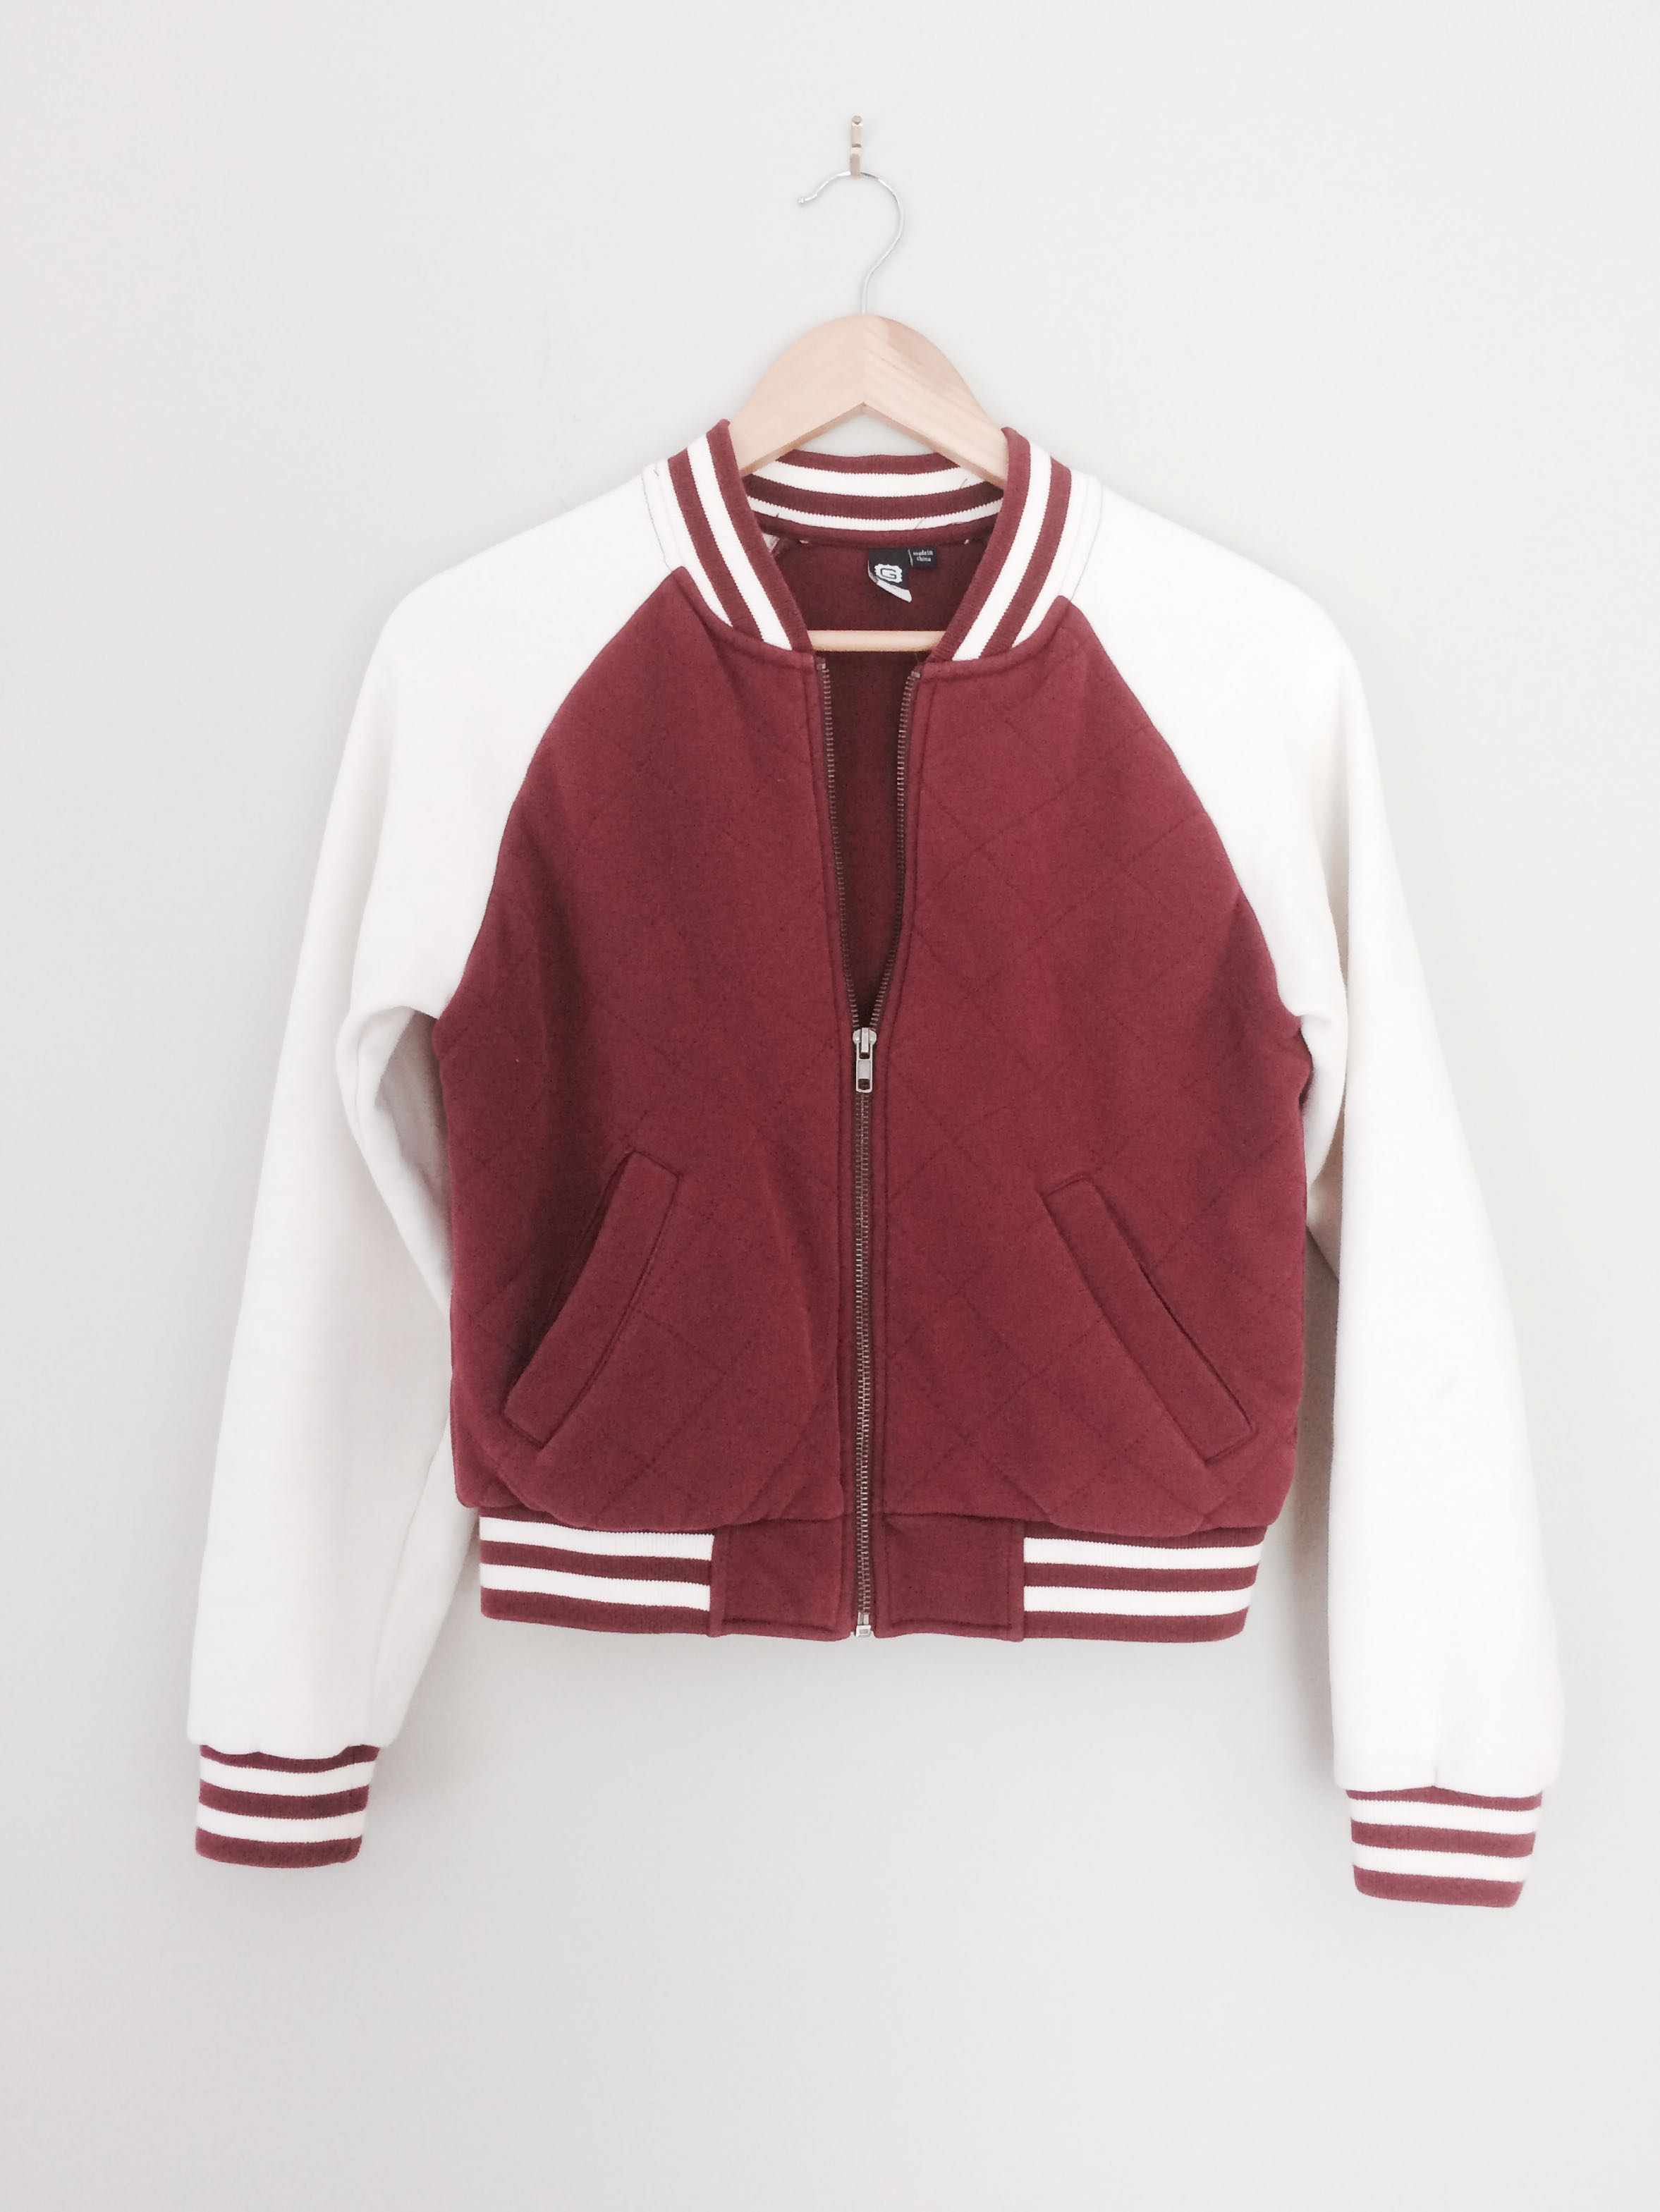 Glassons burgundy cotton jacket size M